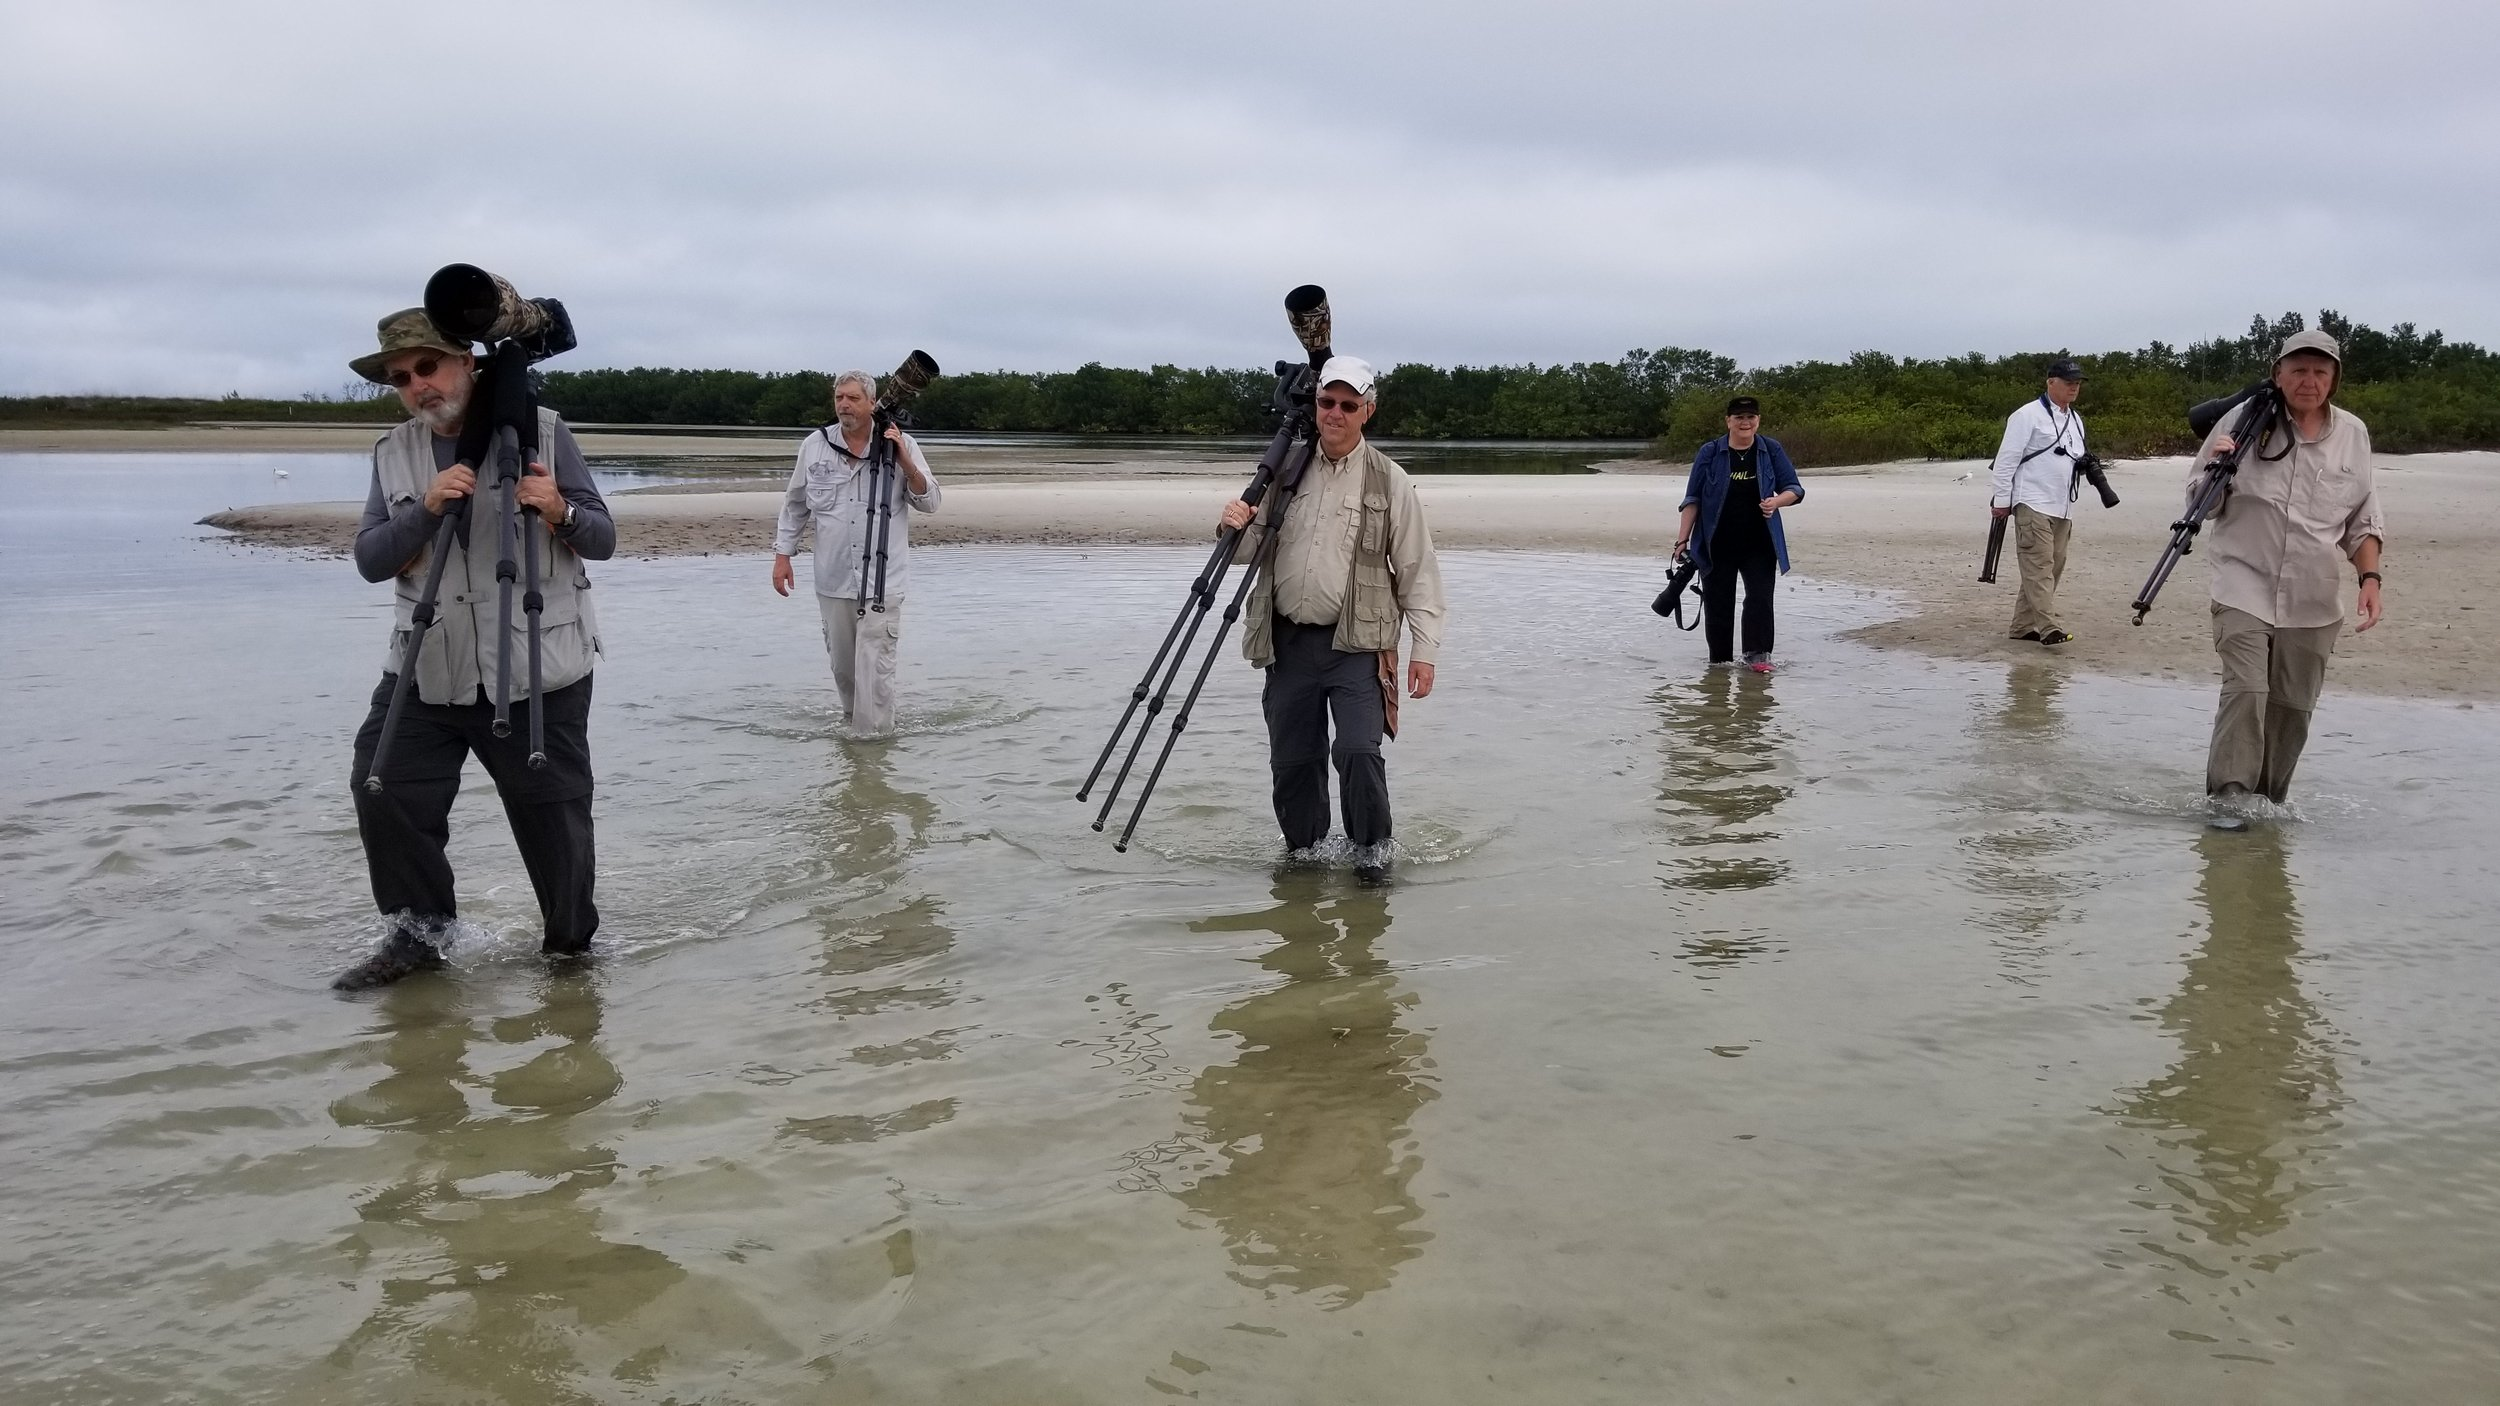 Hard at work trudging through the swamp, wish they would drain it...(second from left is Mr Doohickey)...Photo courtesy of Maxis Gamez..